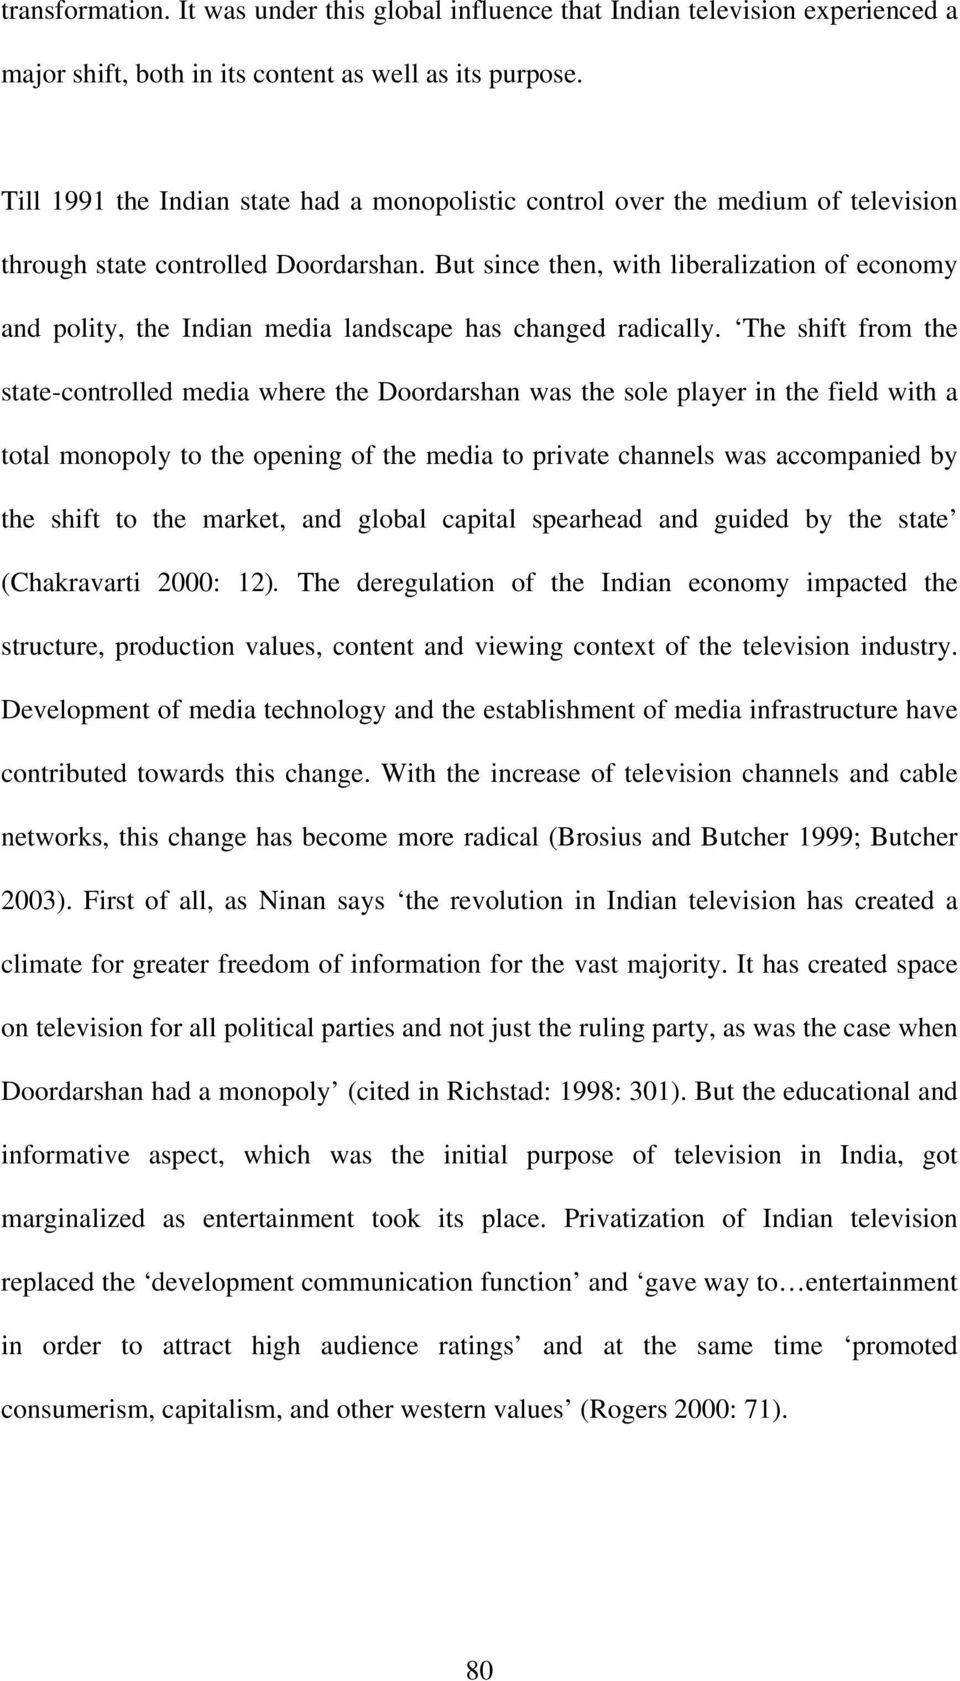 But since then, with liberalization of economy and polity, the Indian media landscape has changed radically.